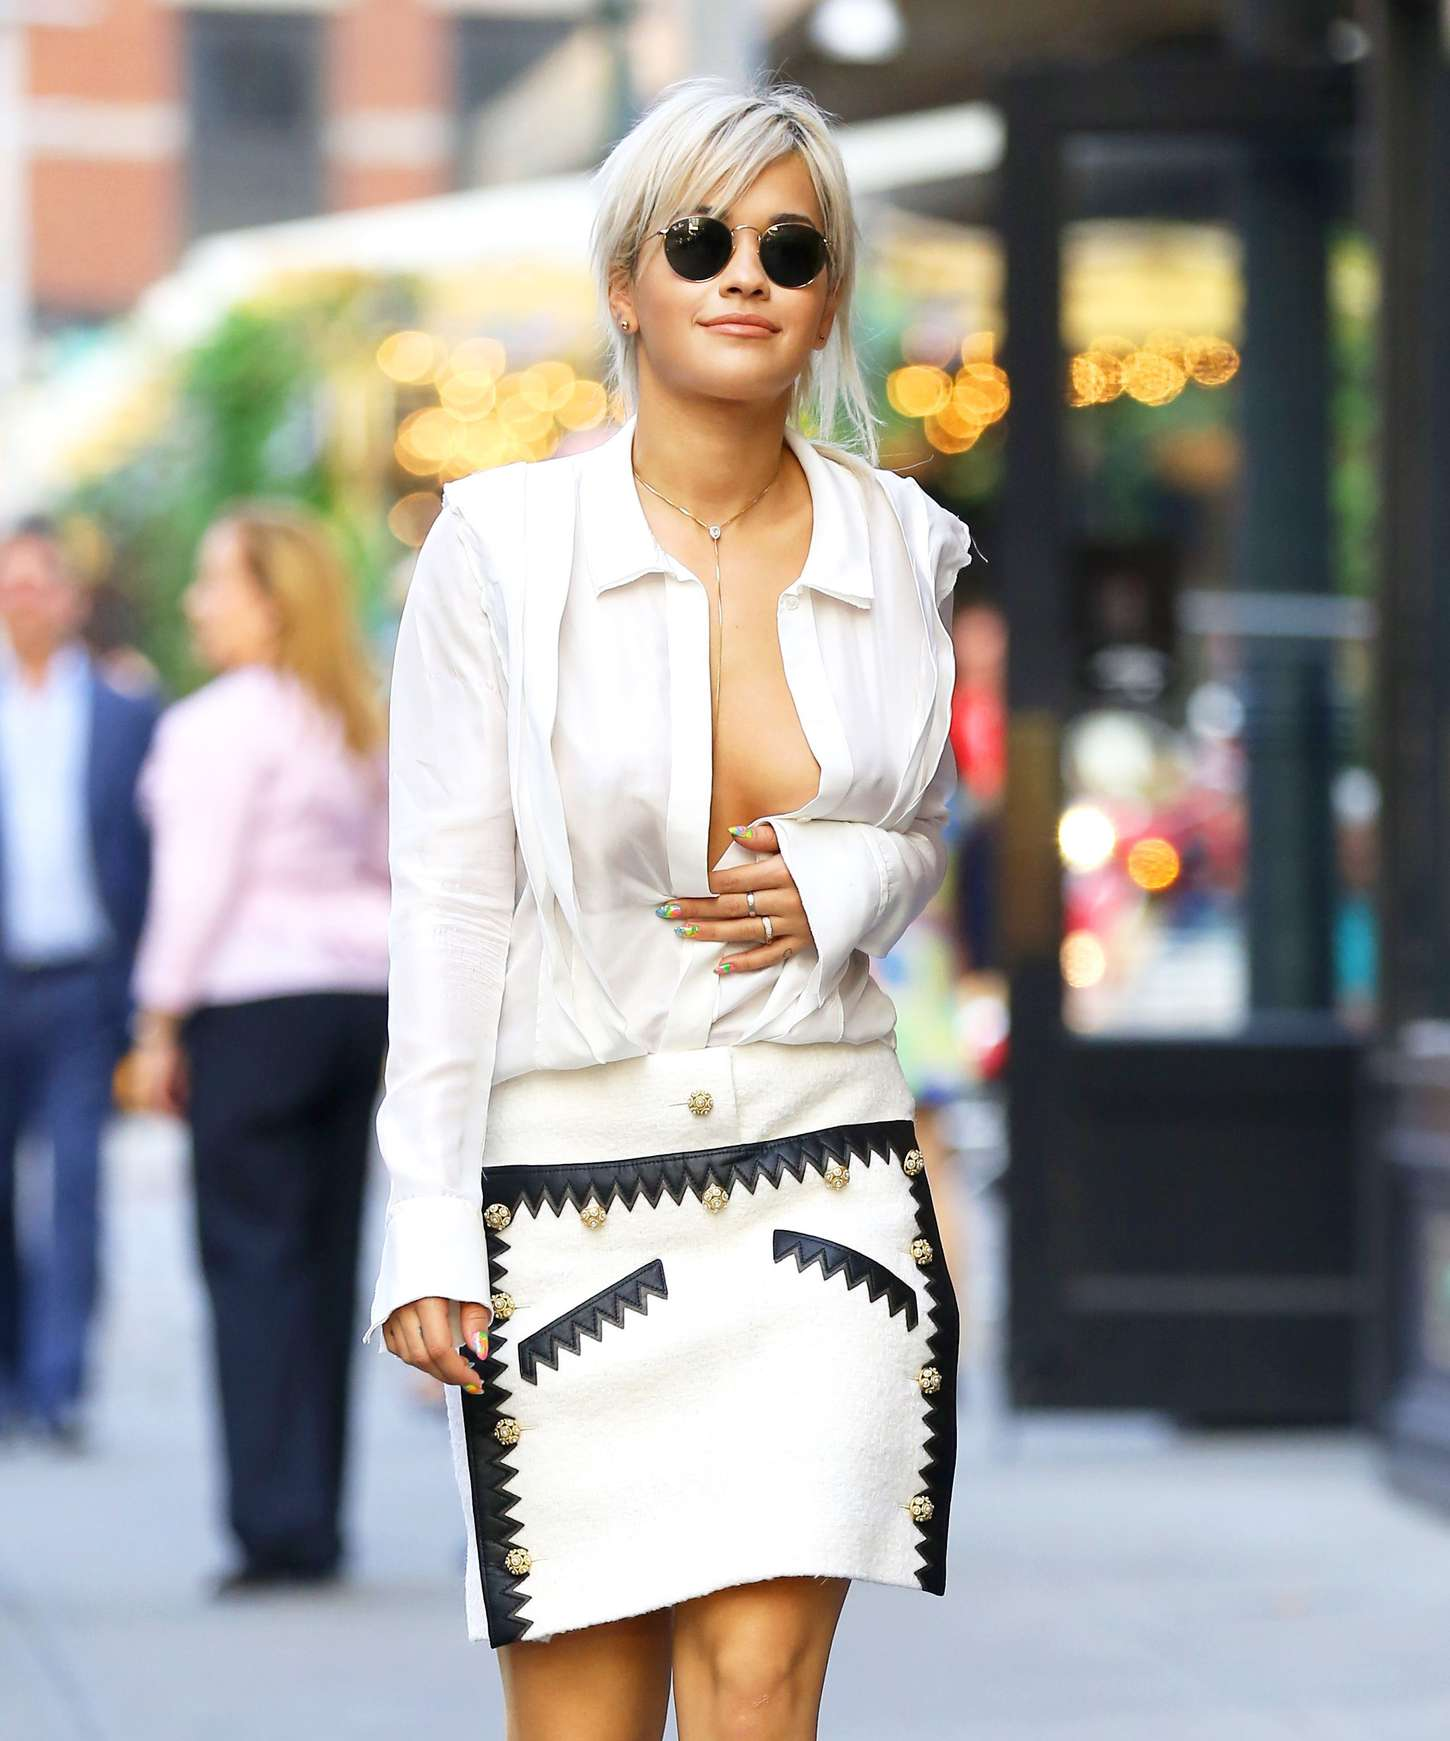 Rita Ora In White Skirt Out In New York Gotceleb